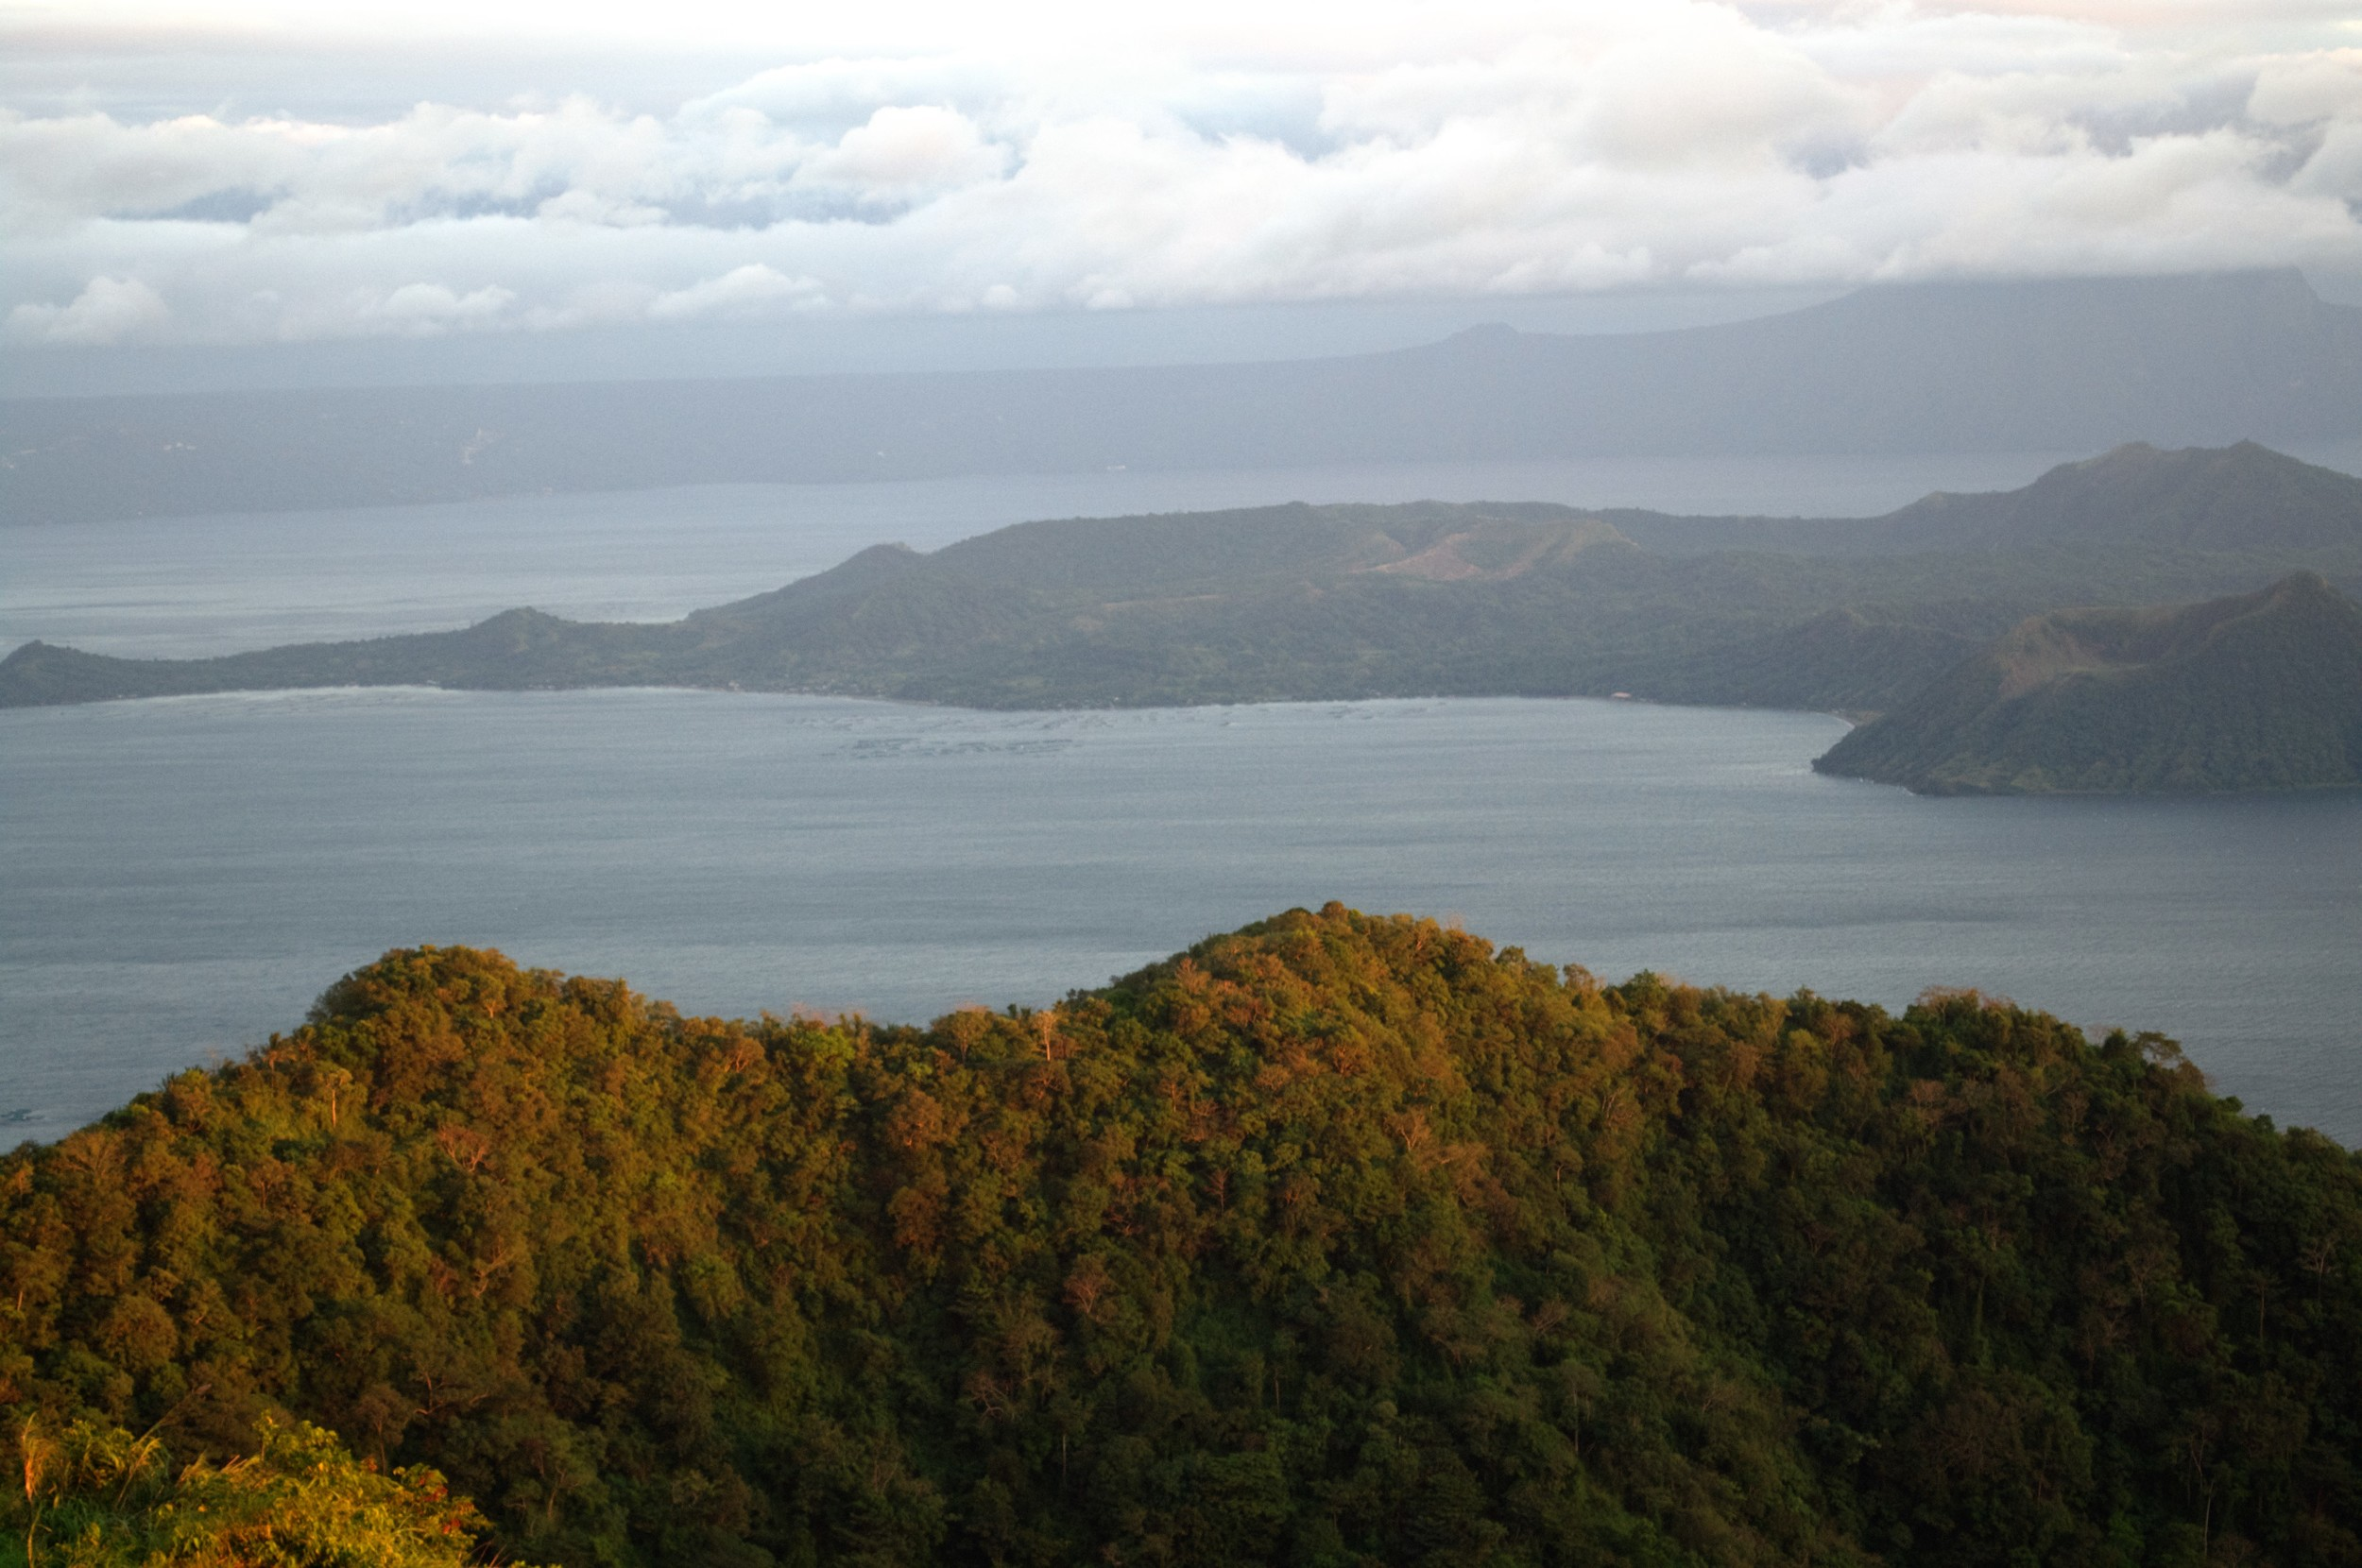 View of Taal lake from Tagaytay